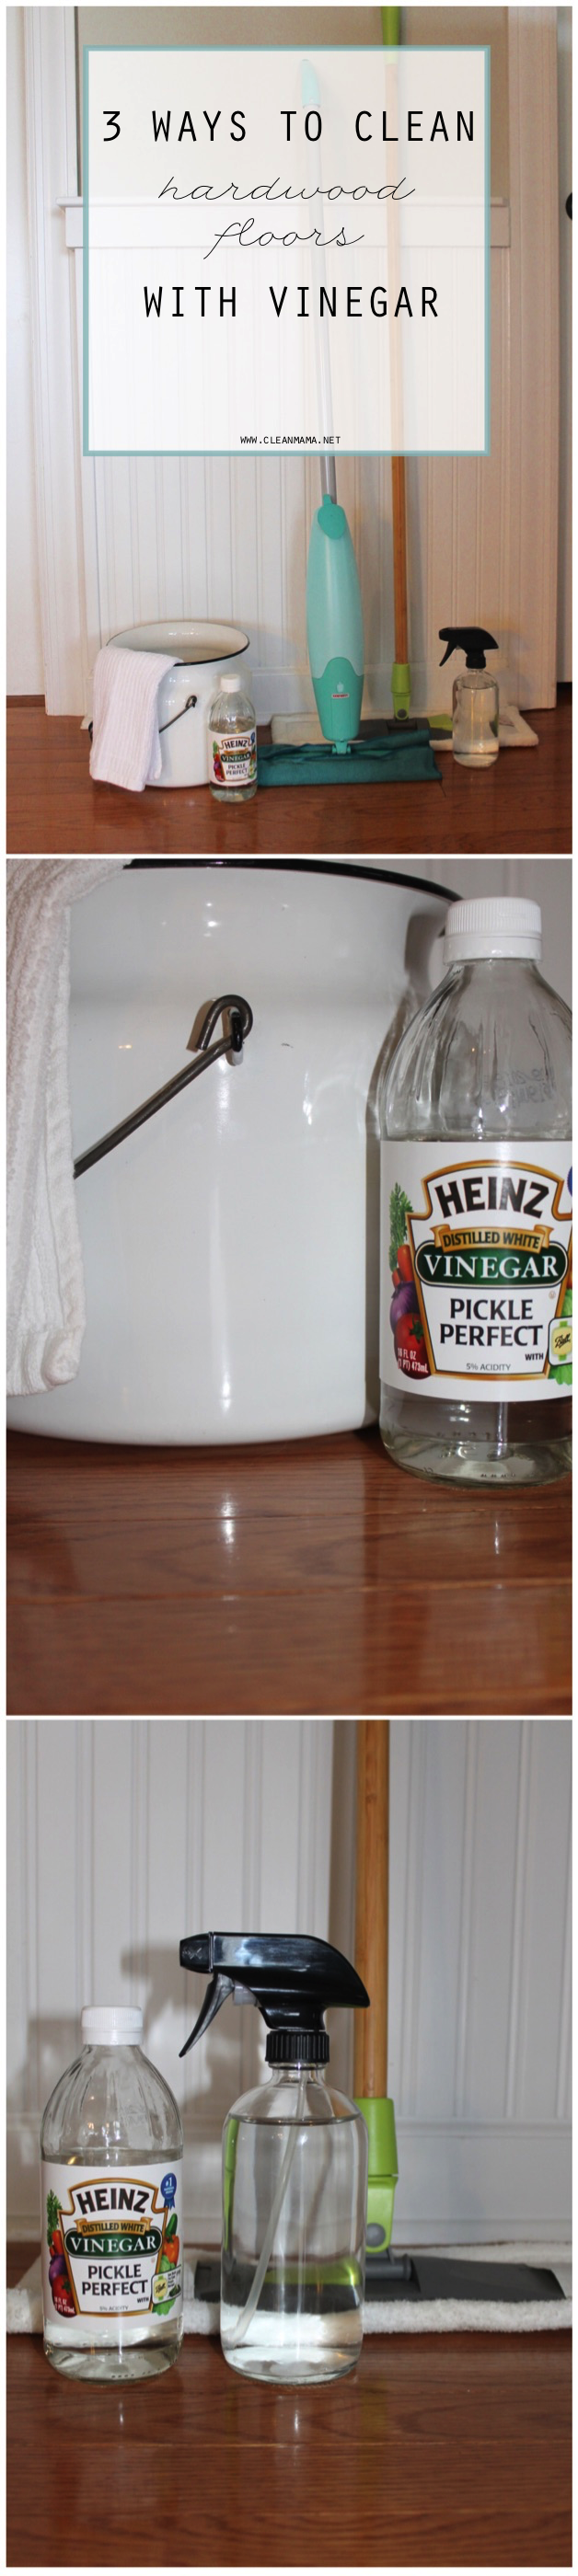 3 ways to clean hardwood floors with vinegar